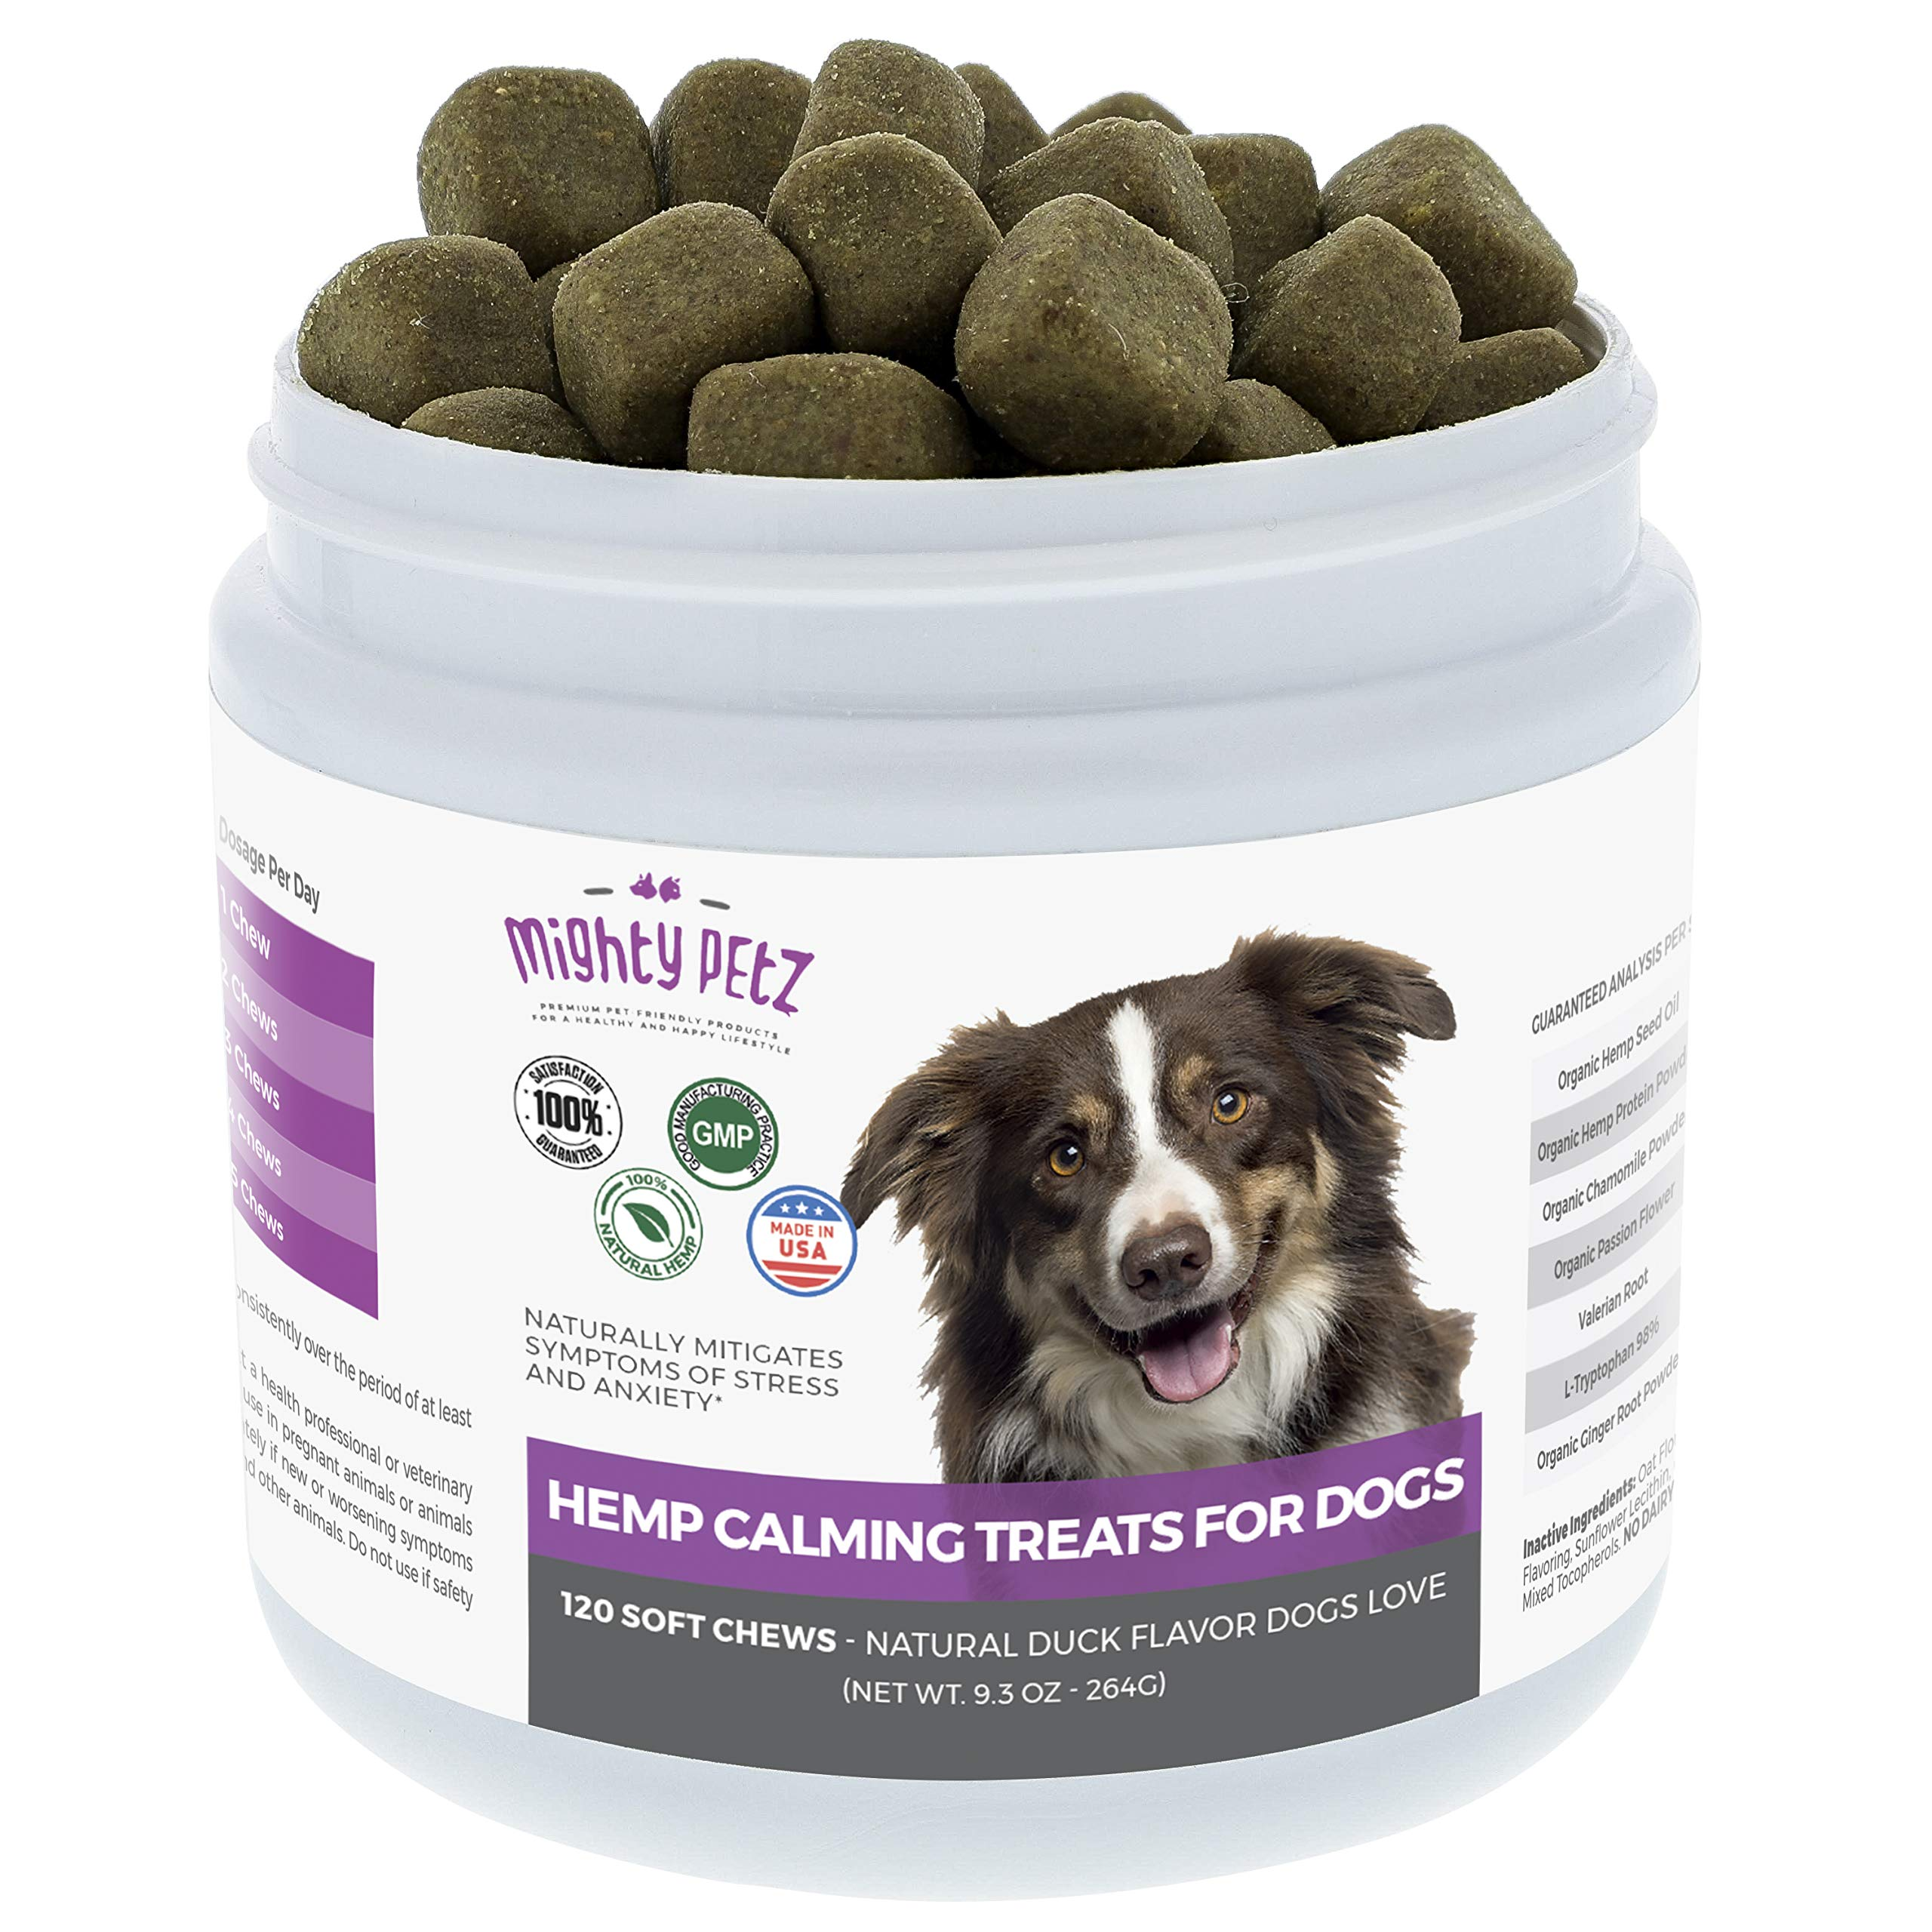 Hemp Calming Treats for Dogs – Natural Separation Anxiety Relief & Anti-Stress Chews! Behavior Support to Promote Relaxation, Composure and Aid Chewing, Barking and Storms. 120 Tasty Bites Dogs Love!